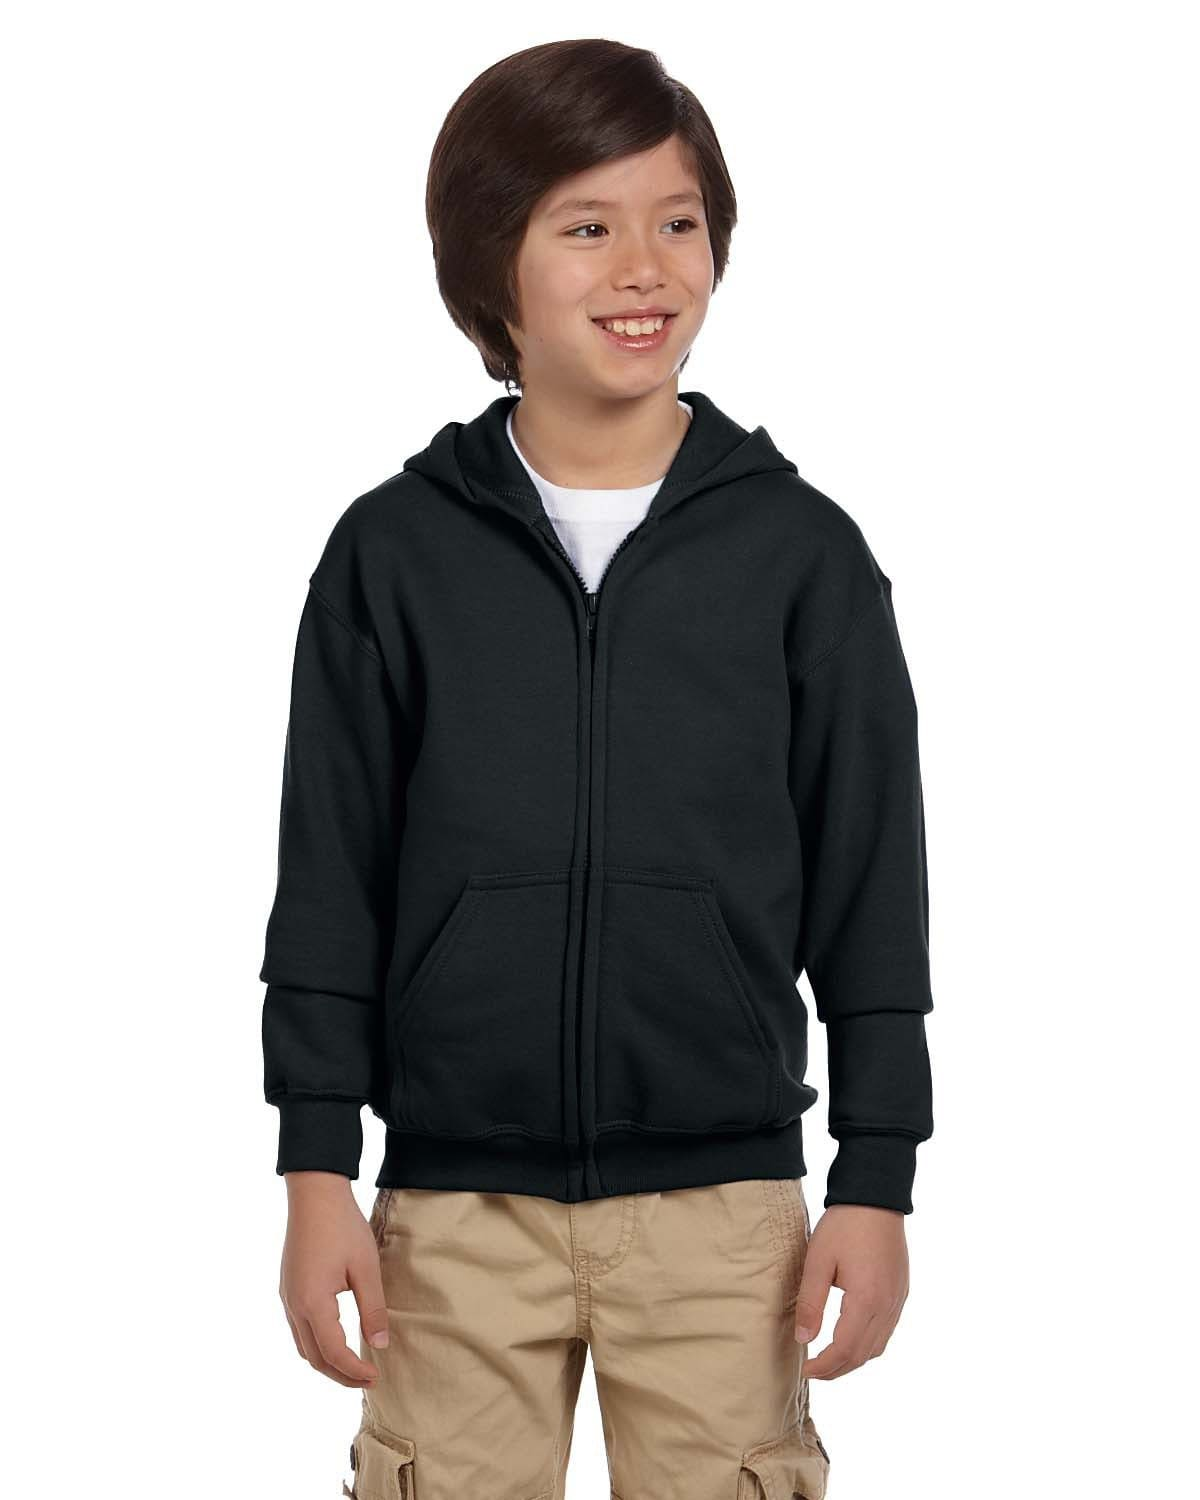 g186b-youth-heavy-blend-8-oz-50-50-full-zip-hood-XSmall-BLACK-Oasispromos